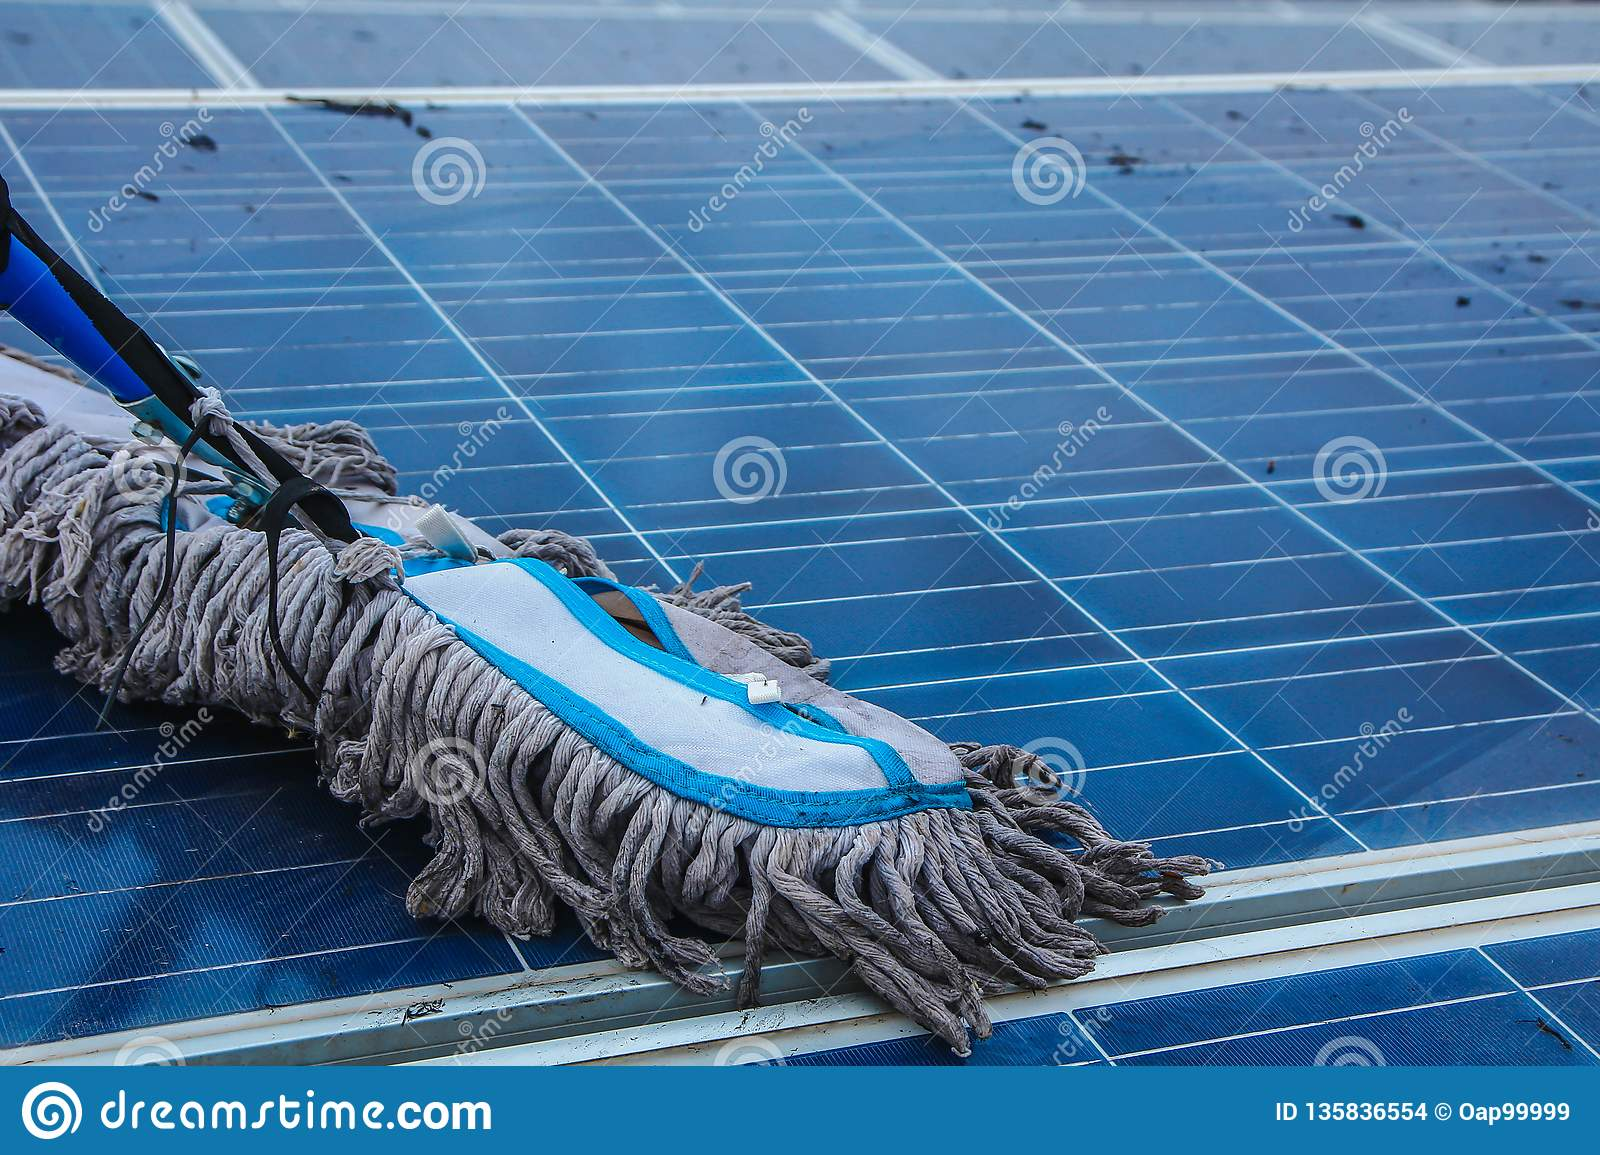 Solar panel, alternative electricity source - concept of sustainable resources, And this is a new system that can generate